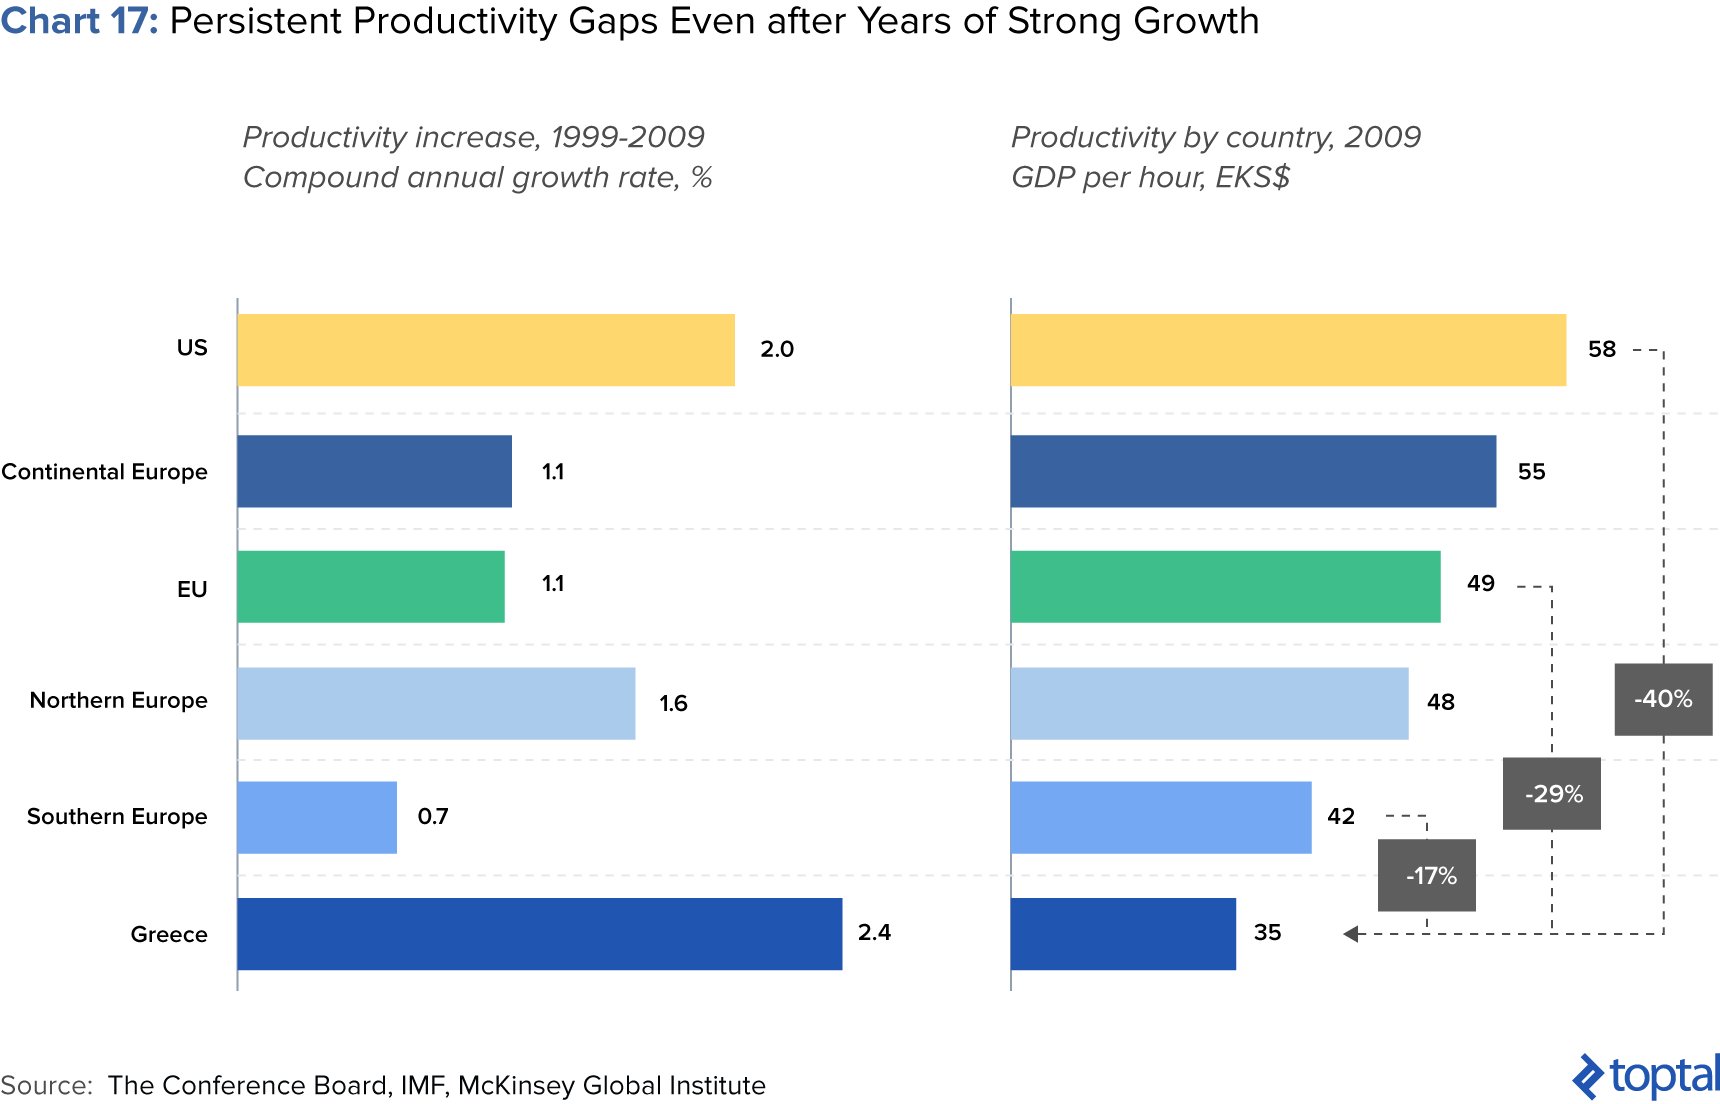 Chart 17: Persistent Productivity Gaps Even after Years of Strong Growth